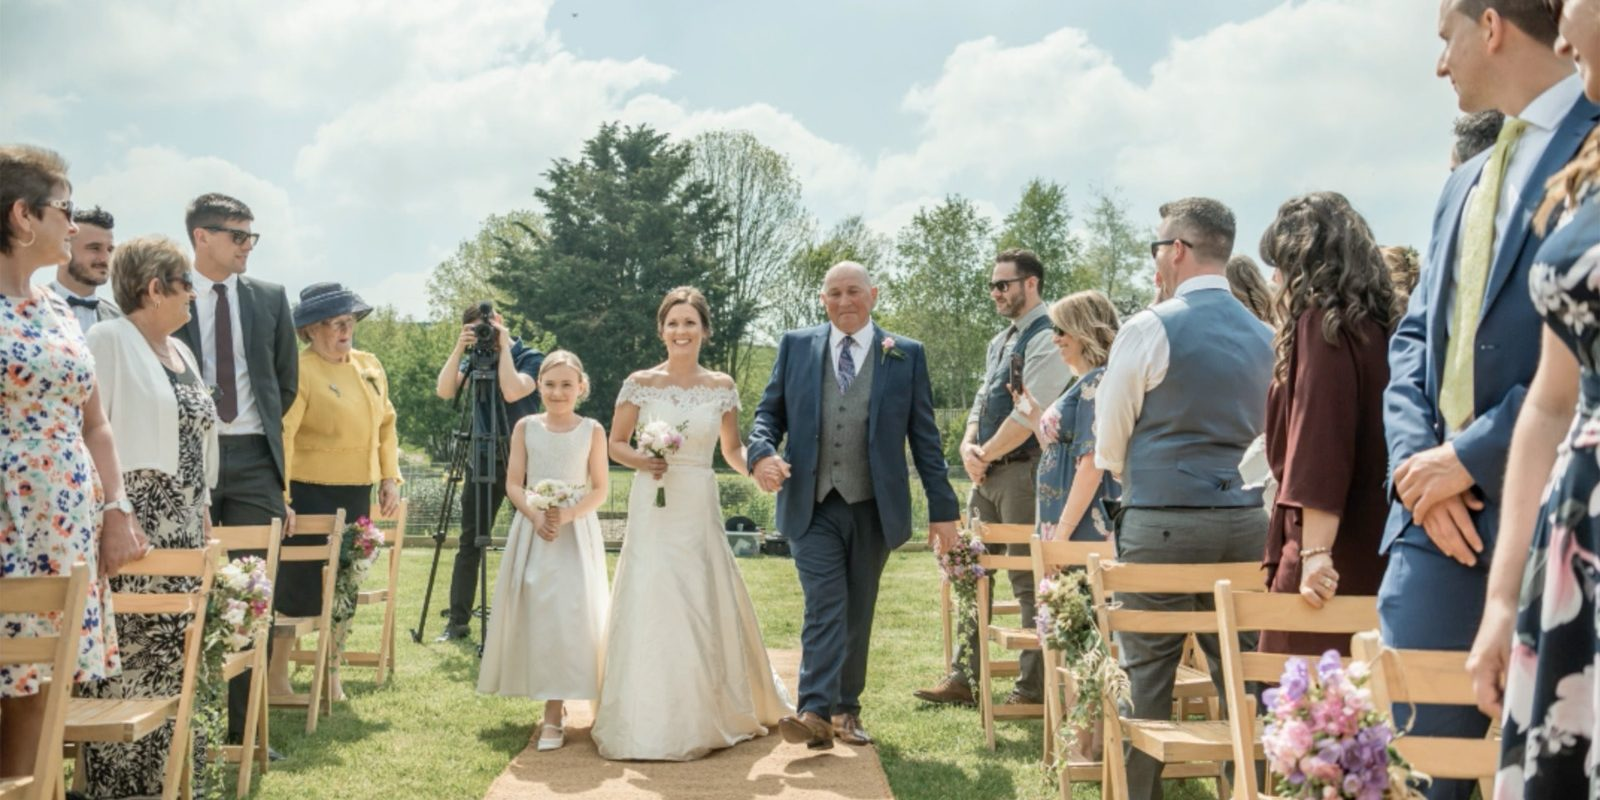 Outdoor wedding ceremonies at Cott Farm - Photo: Tess Chapman